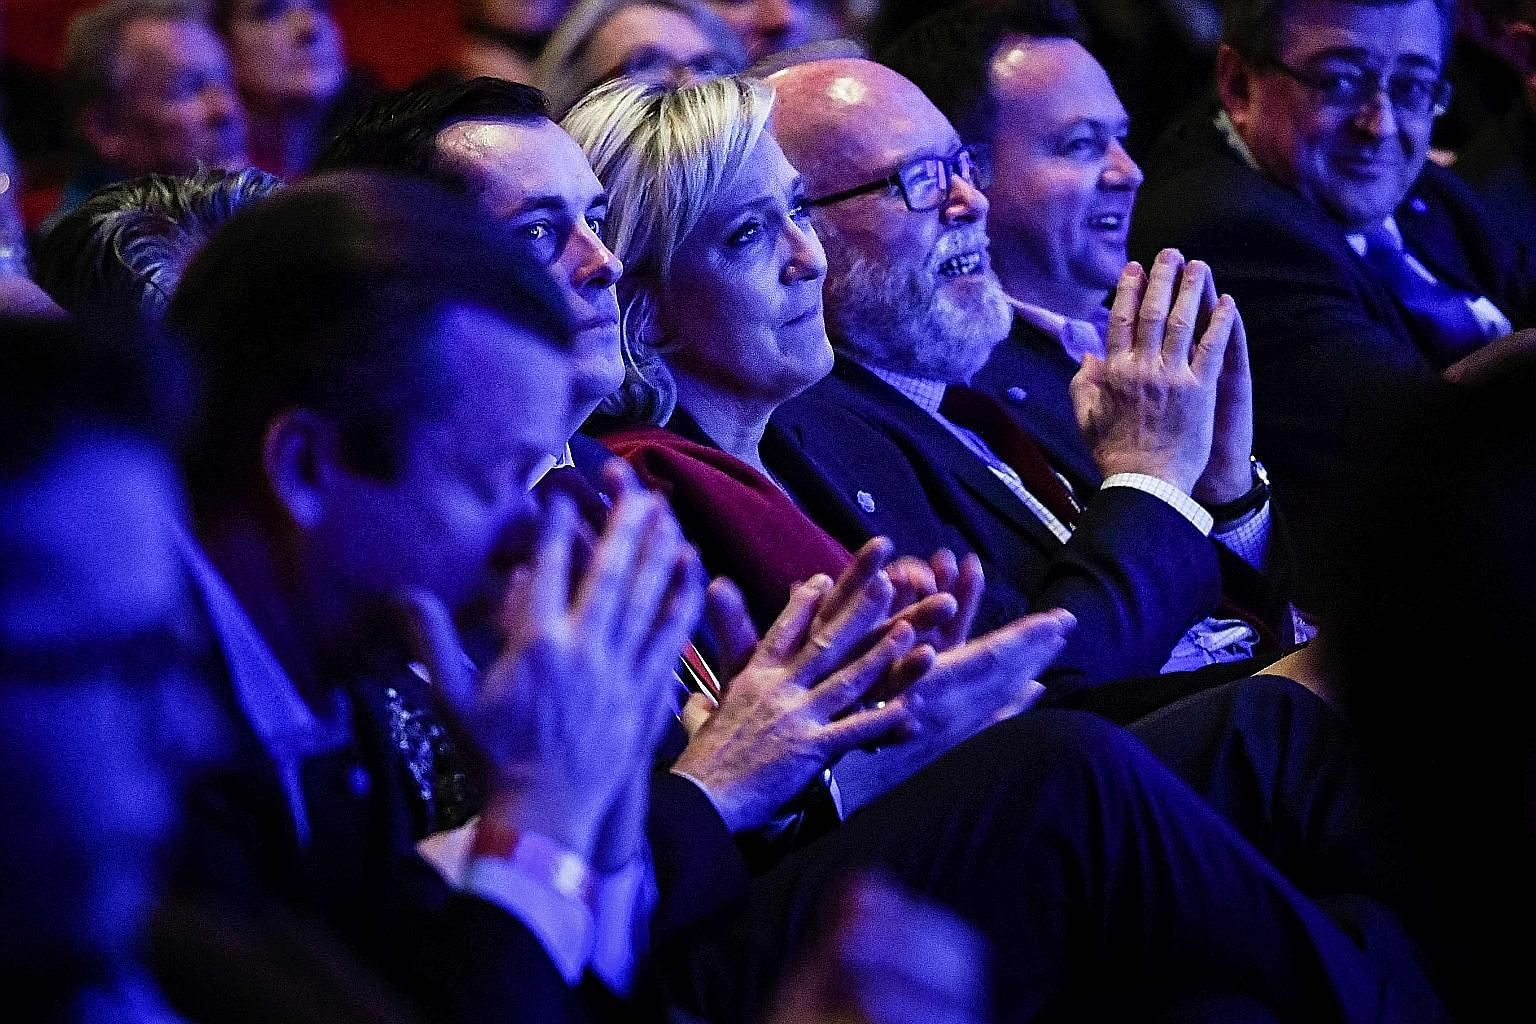 Ms Le Pen in Lyon last Saturday, attending a two-day rally to formally launch her campaign, with a populist agenda strikingly similar to the Trump platform.